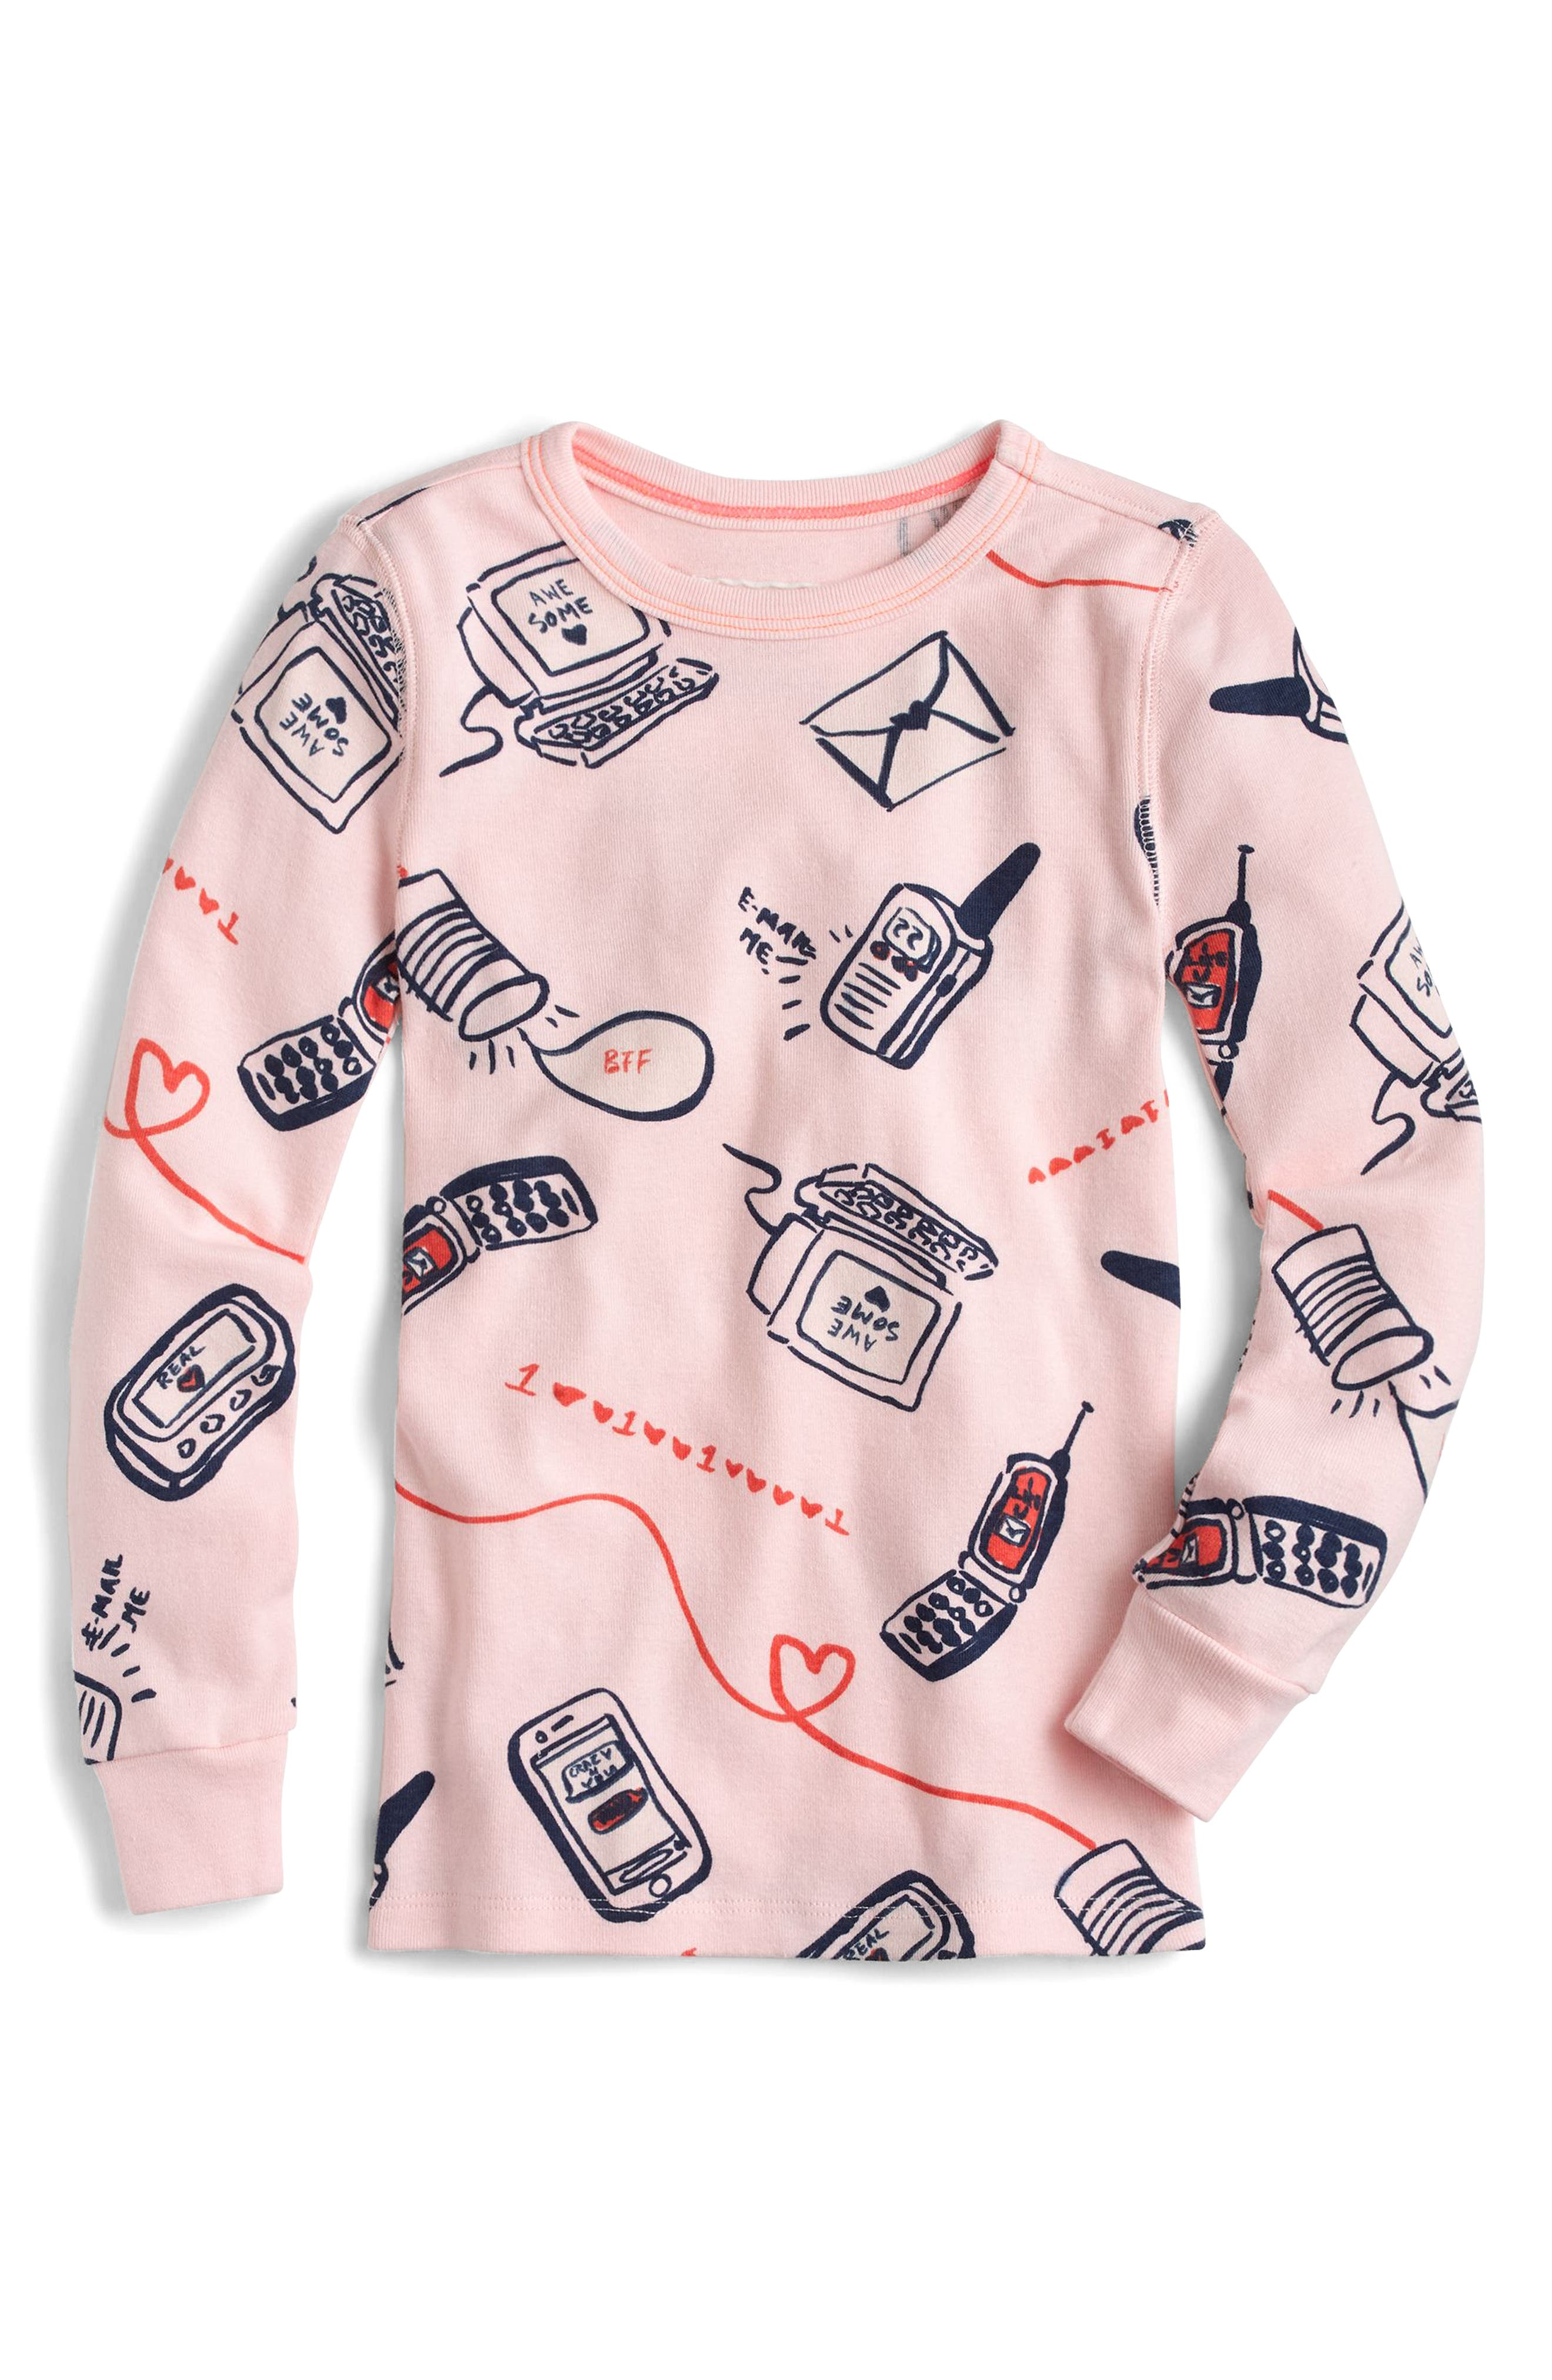 Long Distance Relationship Fitted Two-Piece Pajamas,                             Alternate thumbnail 2, color,                             Ballet Pink